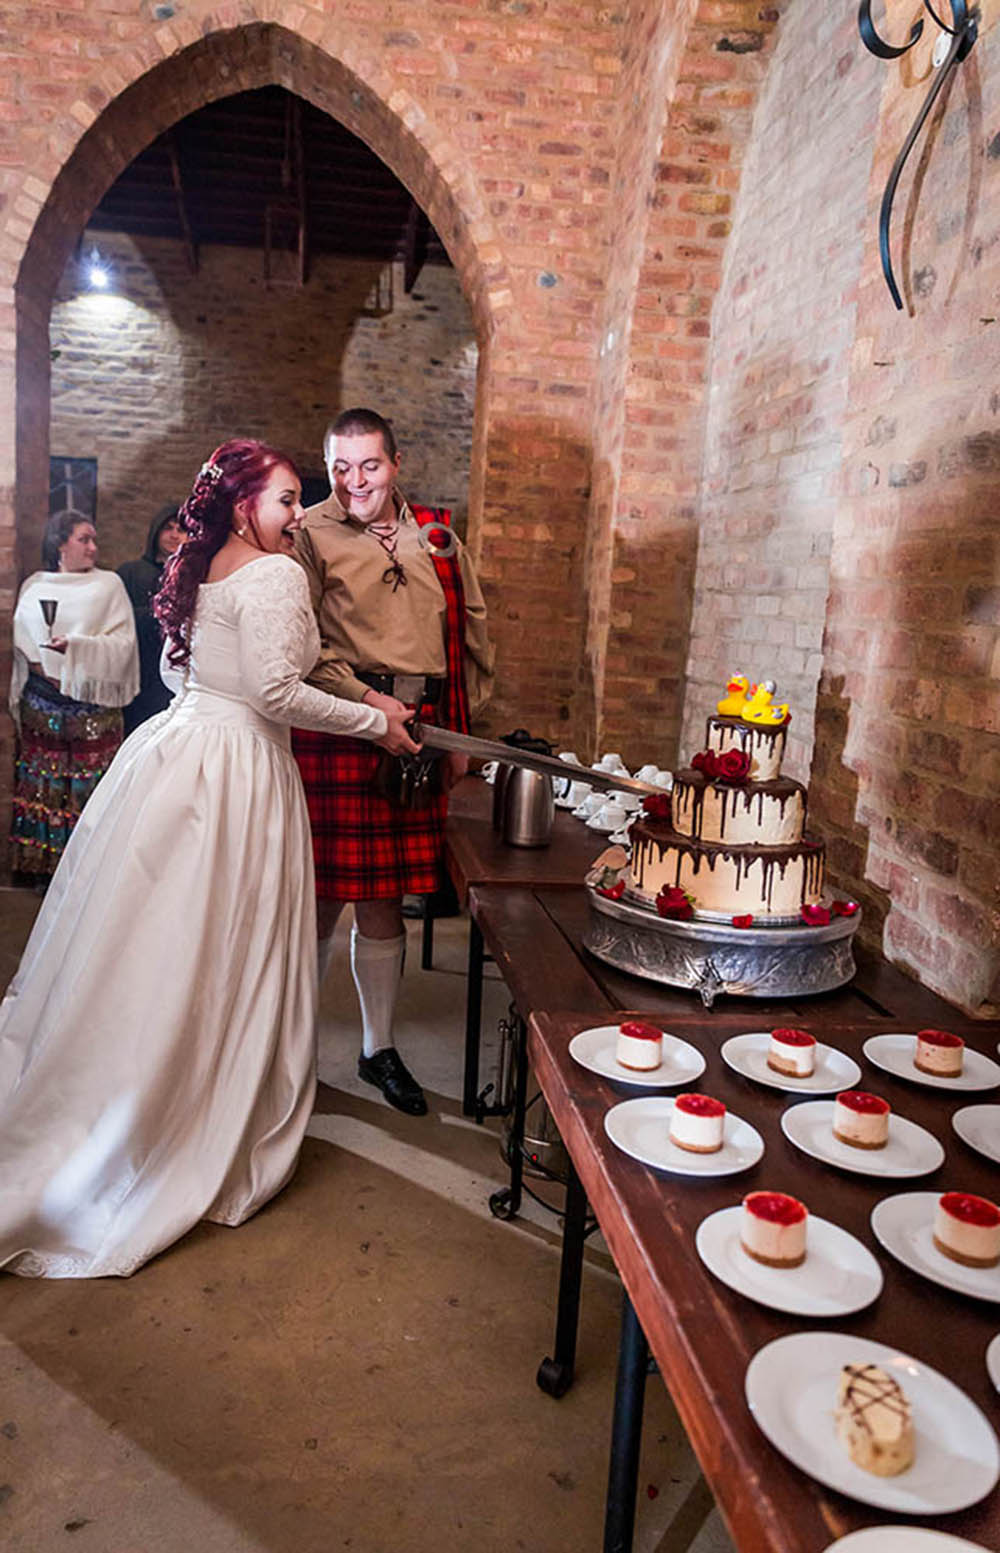 medieval-themed-wedding-medieval-wedding-dgr-photography-castle-wedding-129